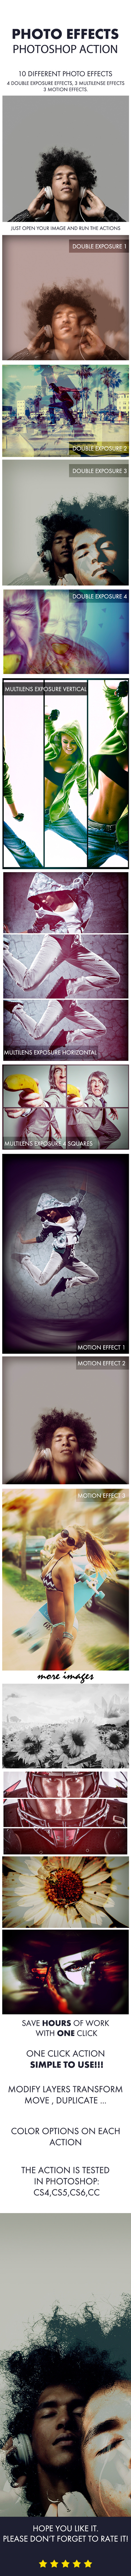 Photo Effects Photoshop Action - Photo Effects Actions